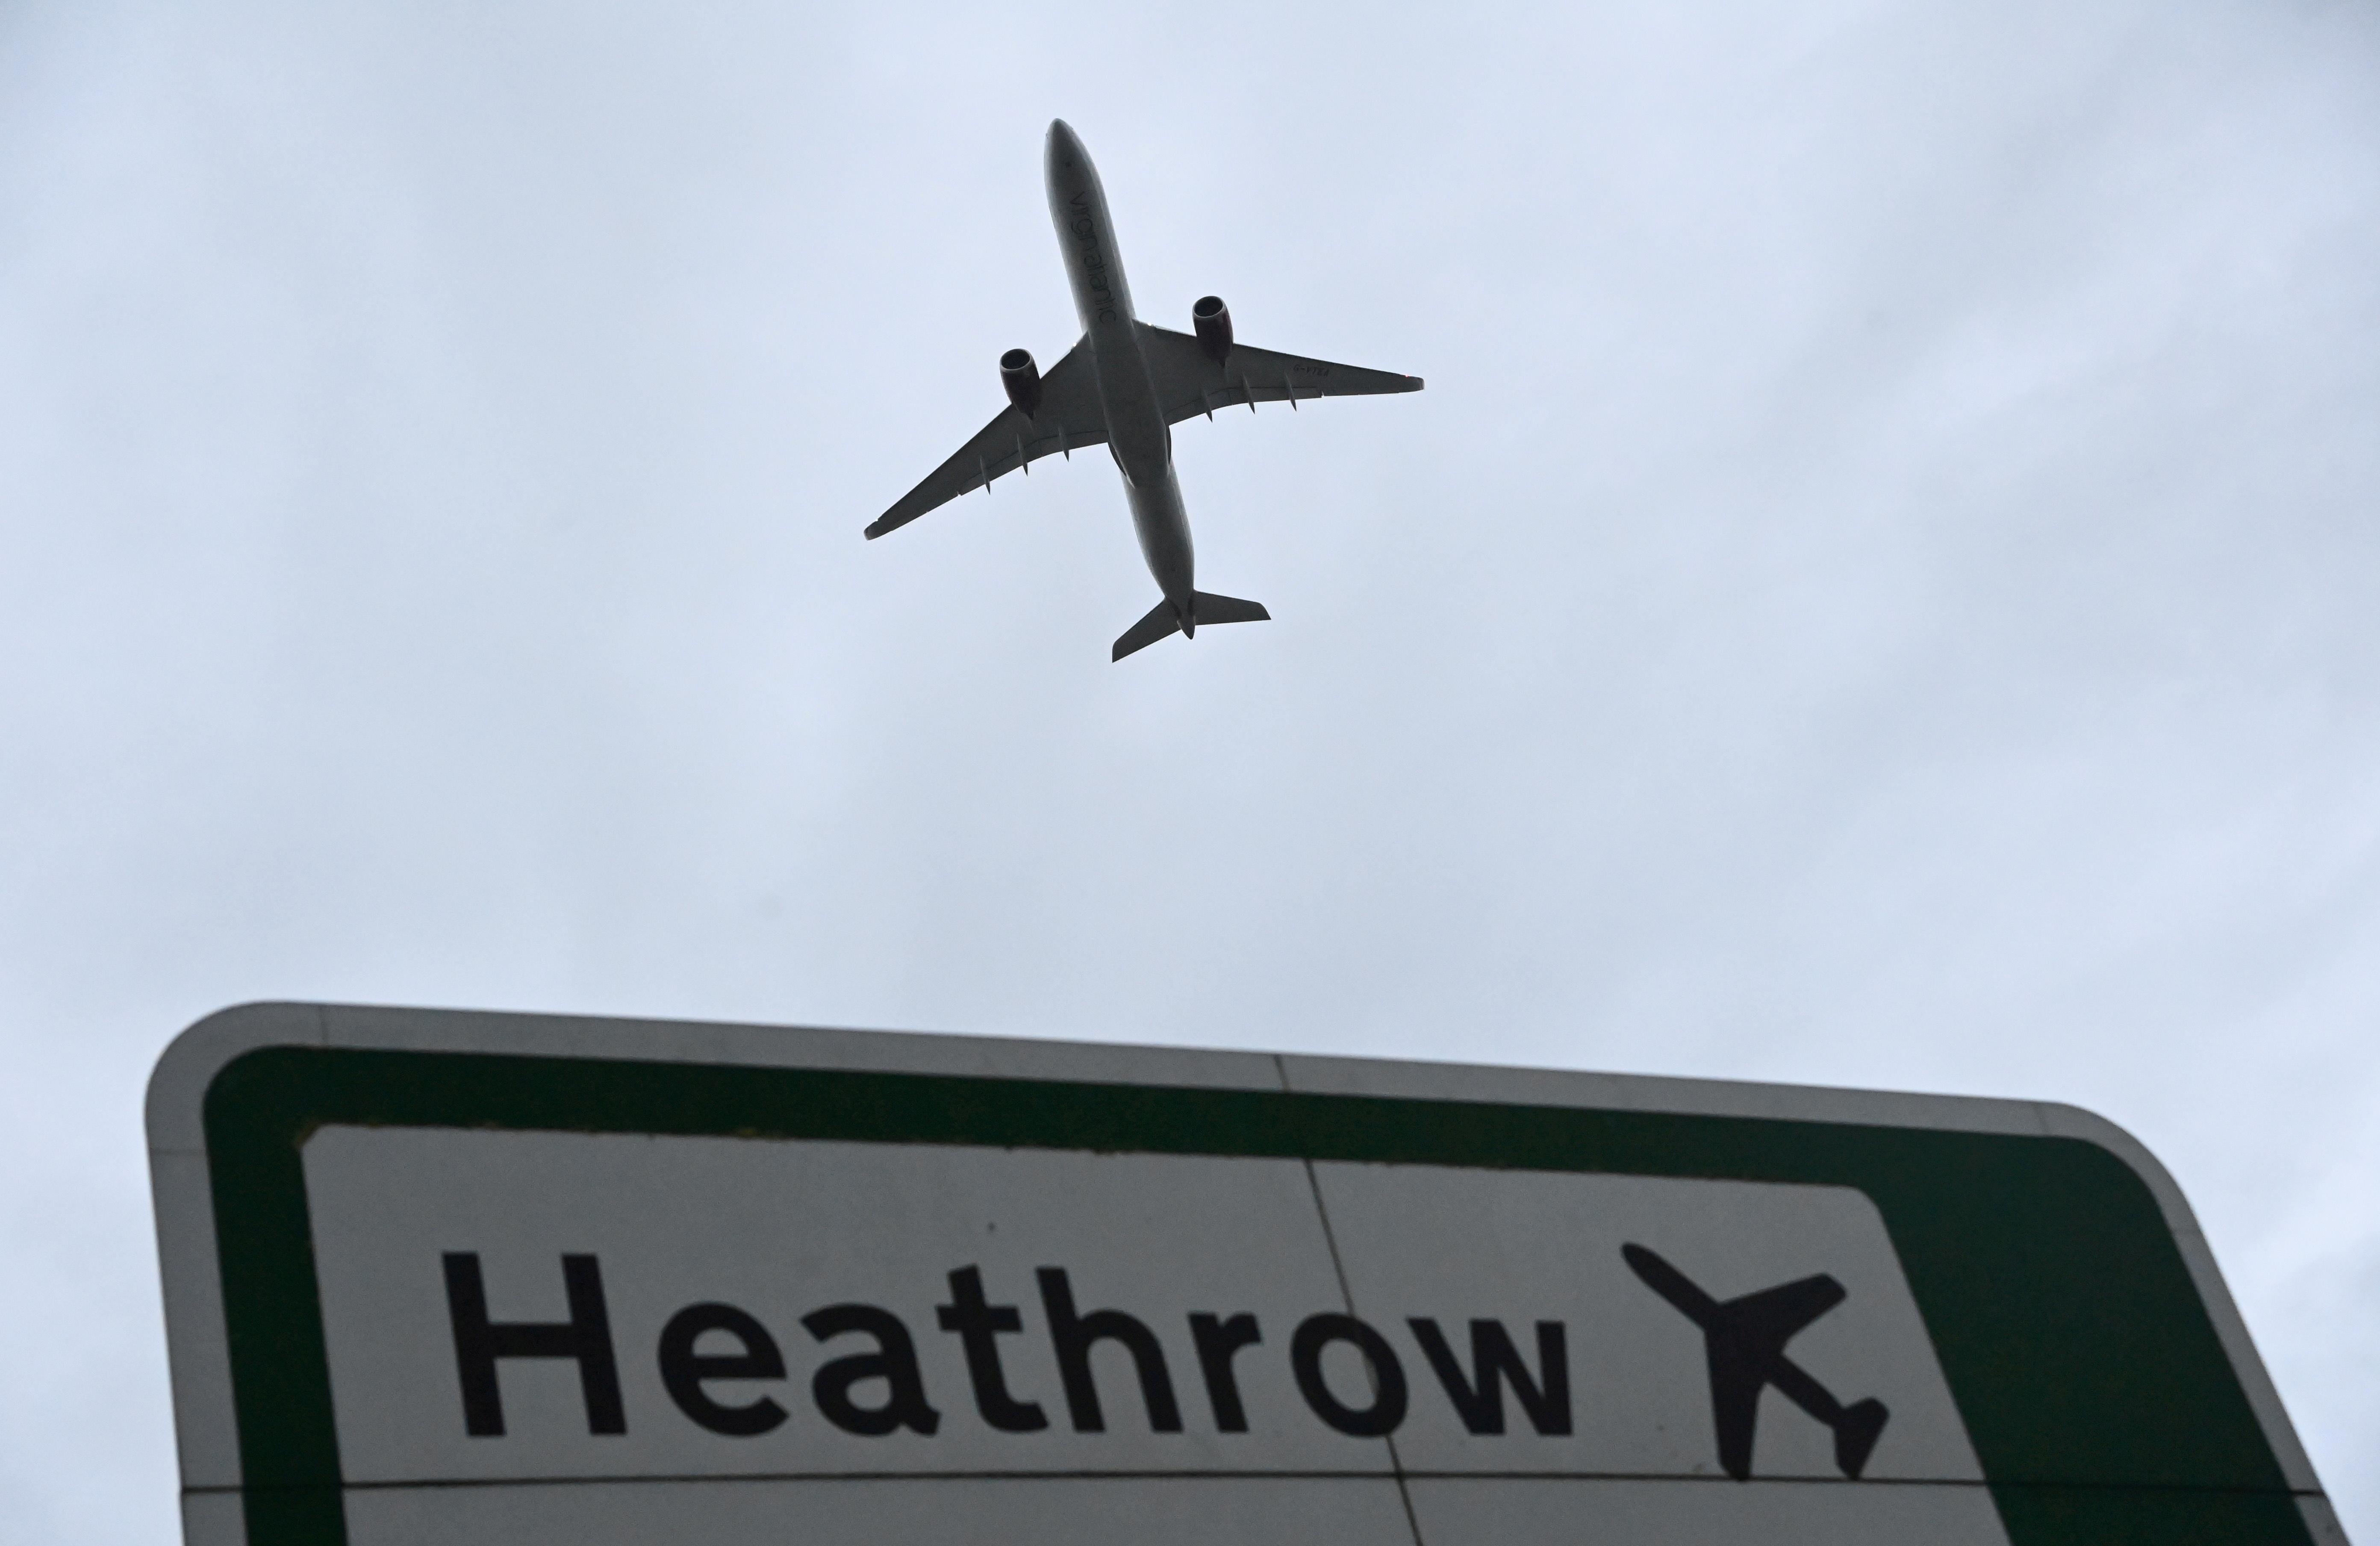 An aircraft takes off at Heathrow Airport amid the spread of the coronavirus disease (COVID-19) pandemic in London, Britain, February 4, 2021. REUTERS/Toby Melville/File Photo